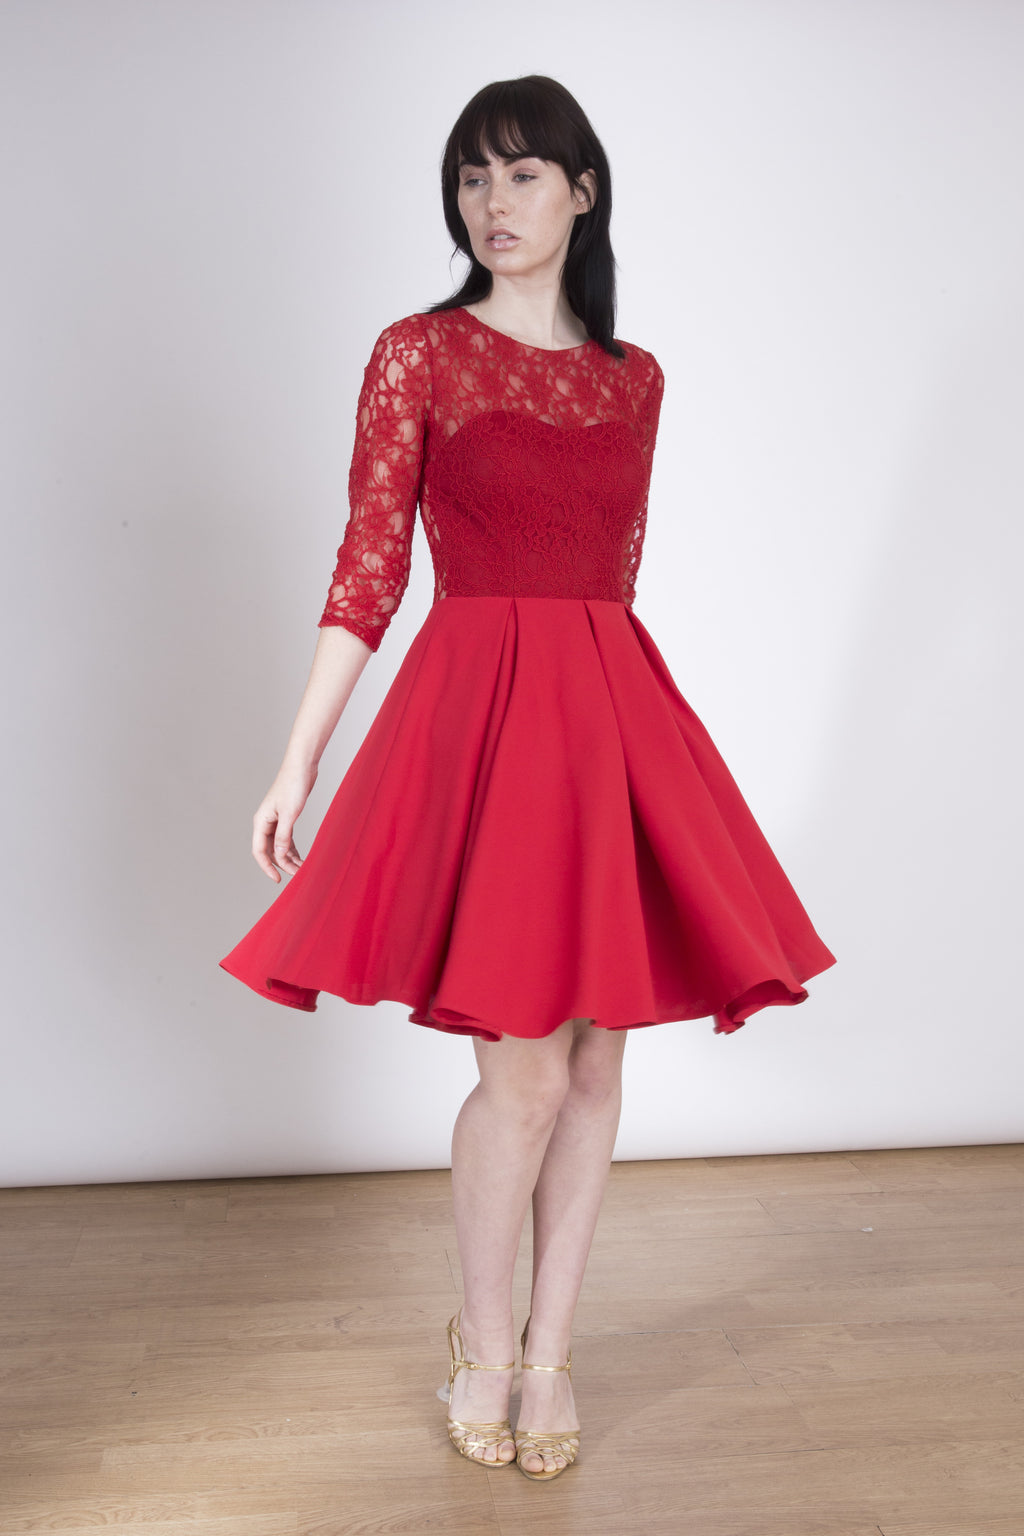 Lauren Lynn London Dress, Red dress, red lace dress, occasion red dress, Lovely mini skirt, Lauren Lynn dress